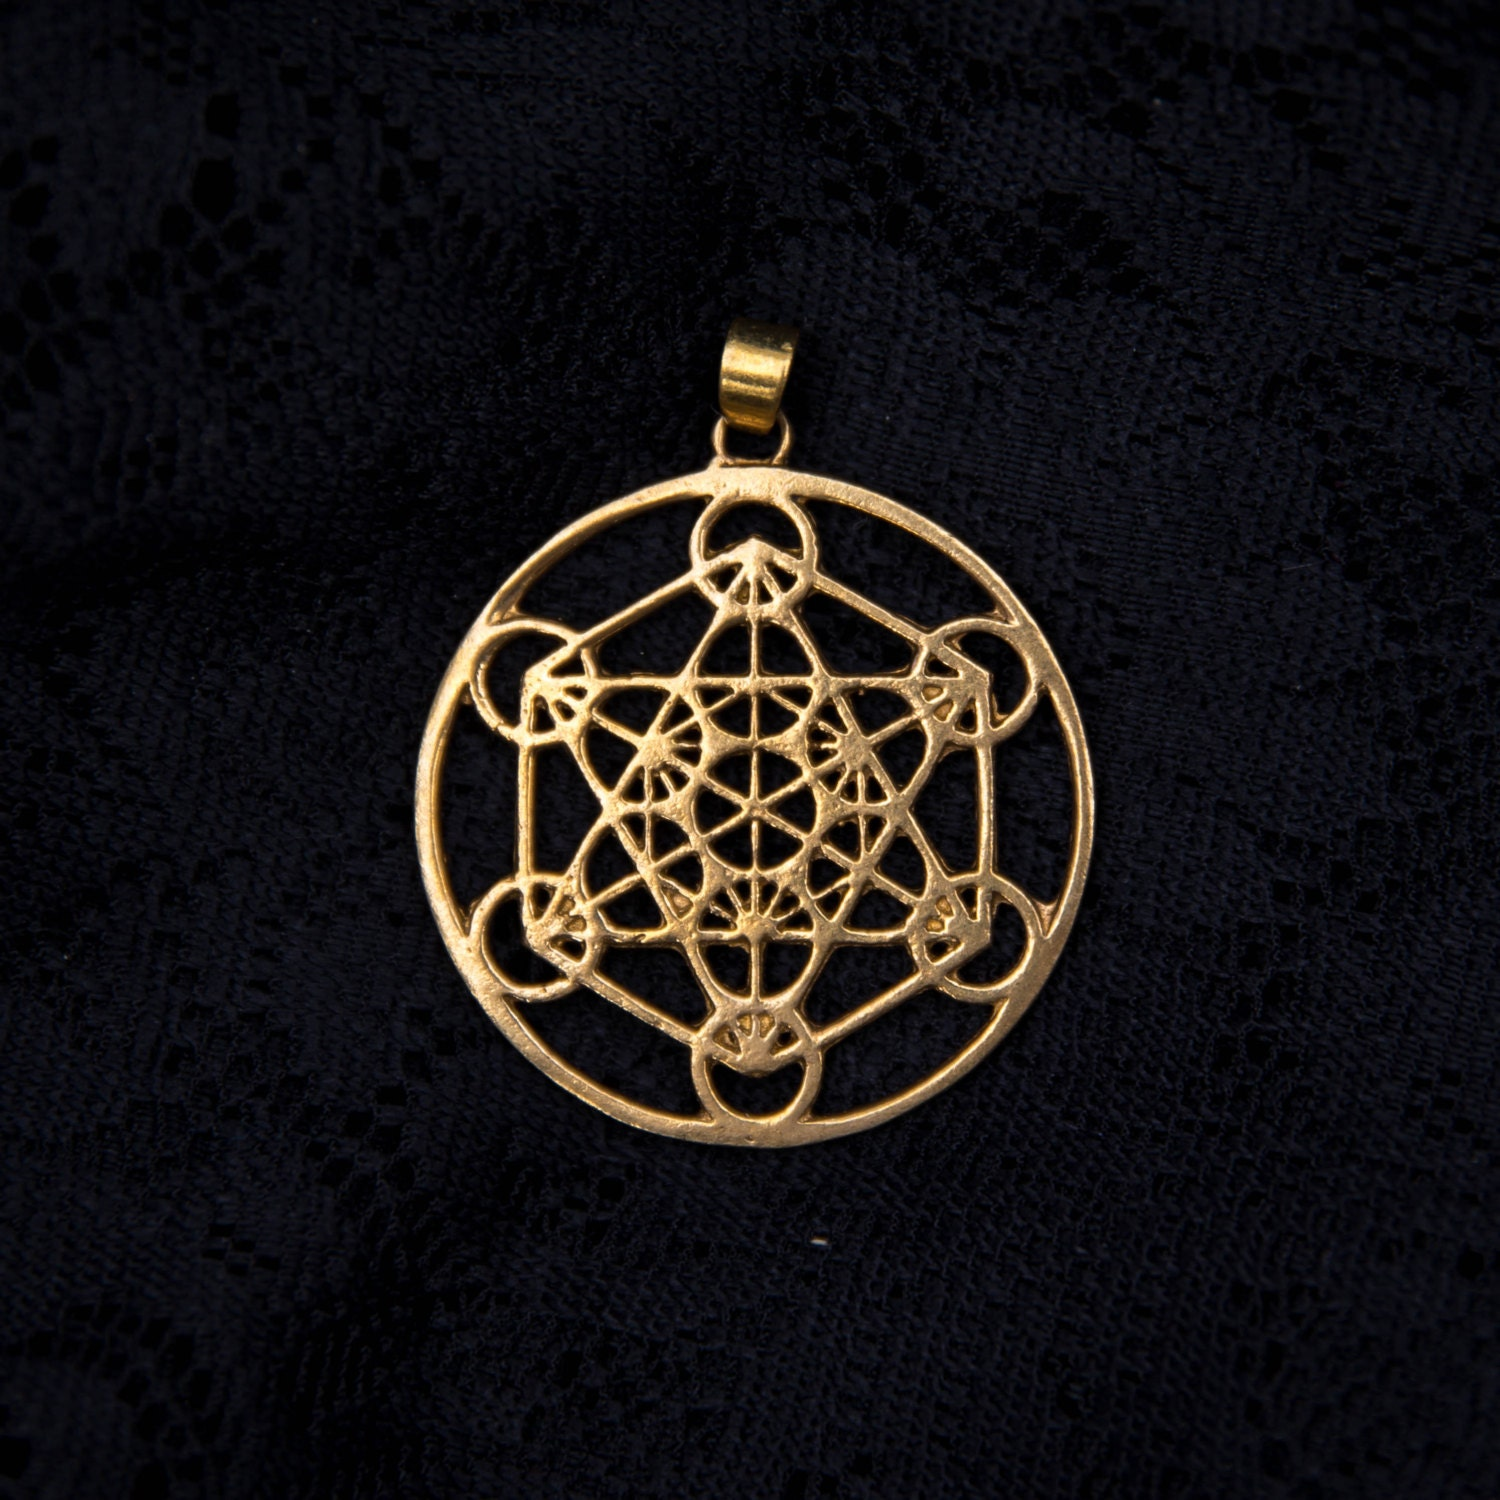 metatrons cube brass pendant charm necklace sacred geometry